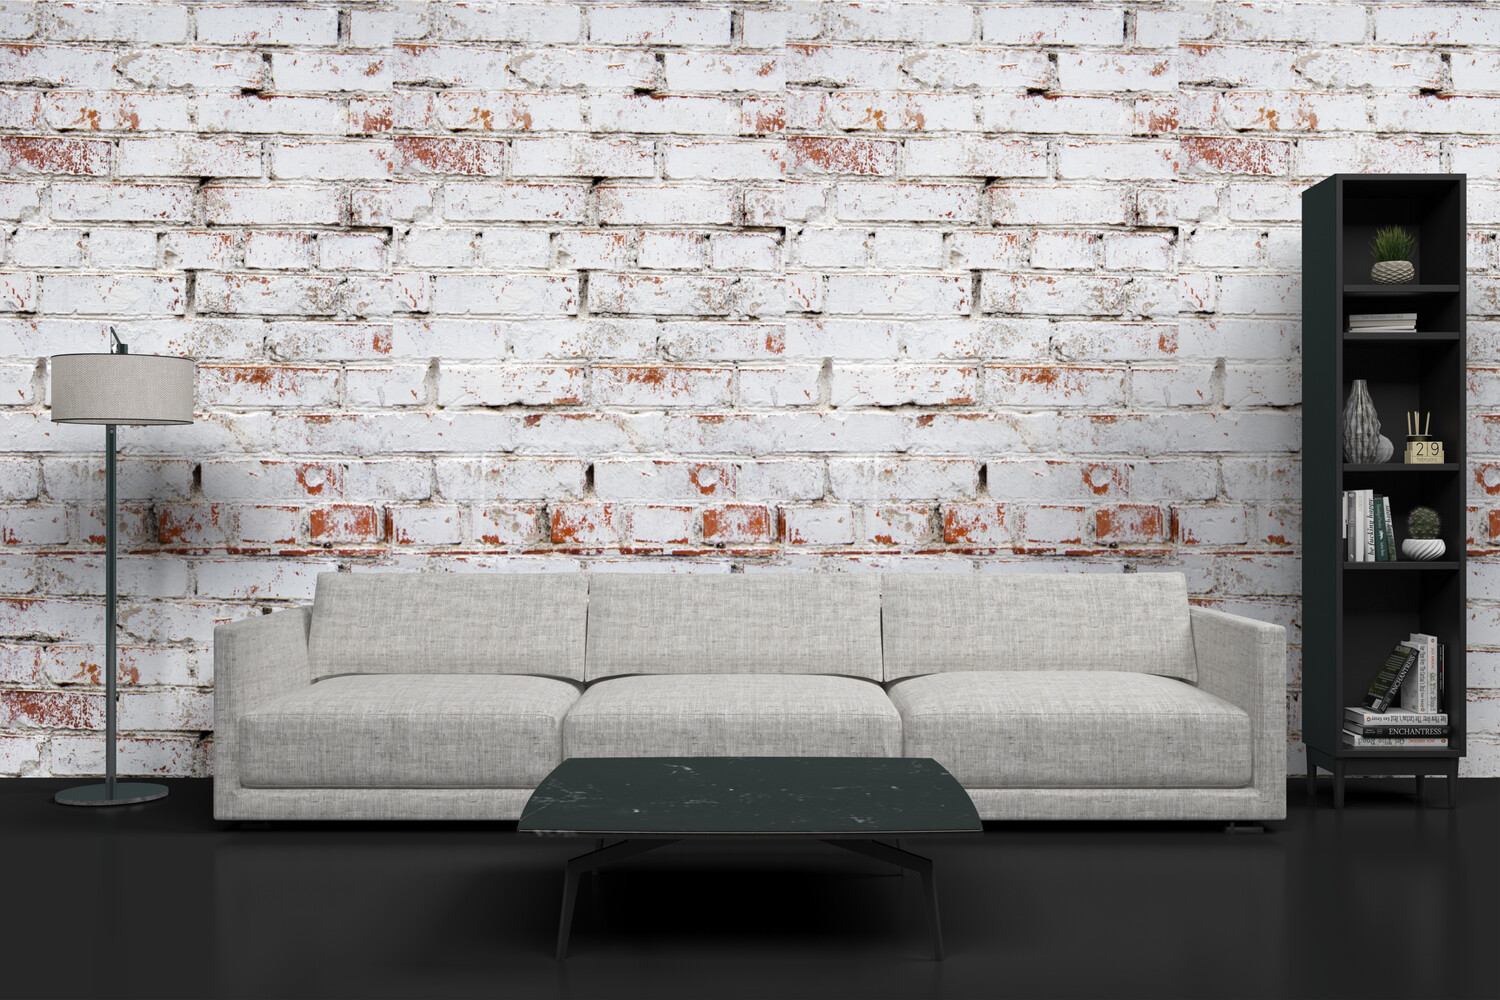 DISTRESSED WHITE BRICK | Vinyl Wall Wrap for Any Room | Removable Vinyl Wallpaper